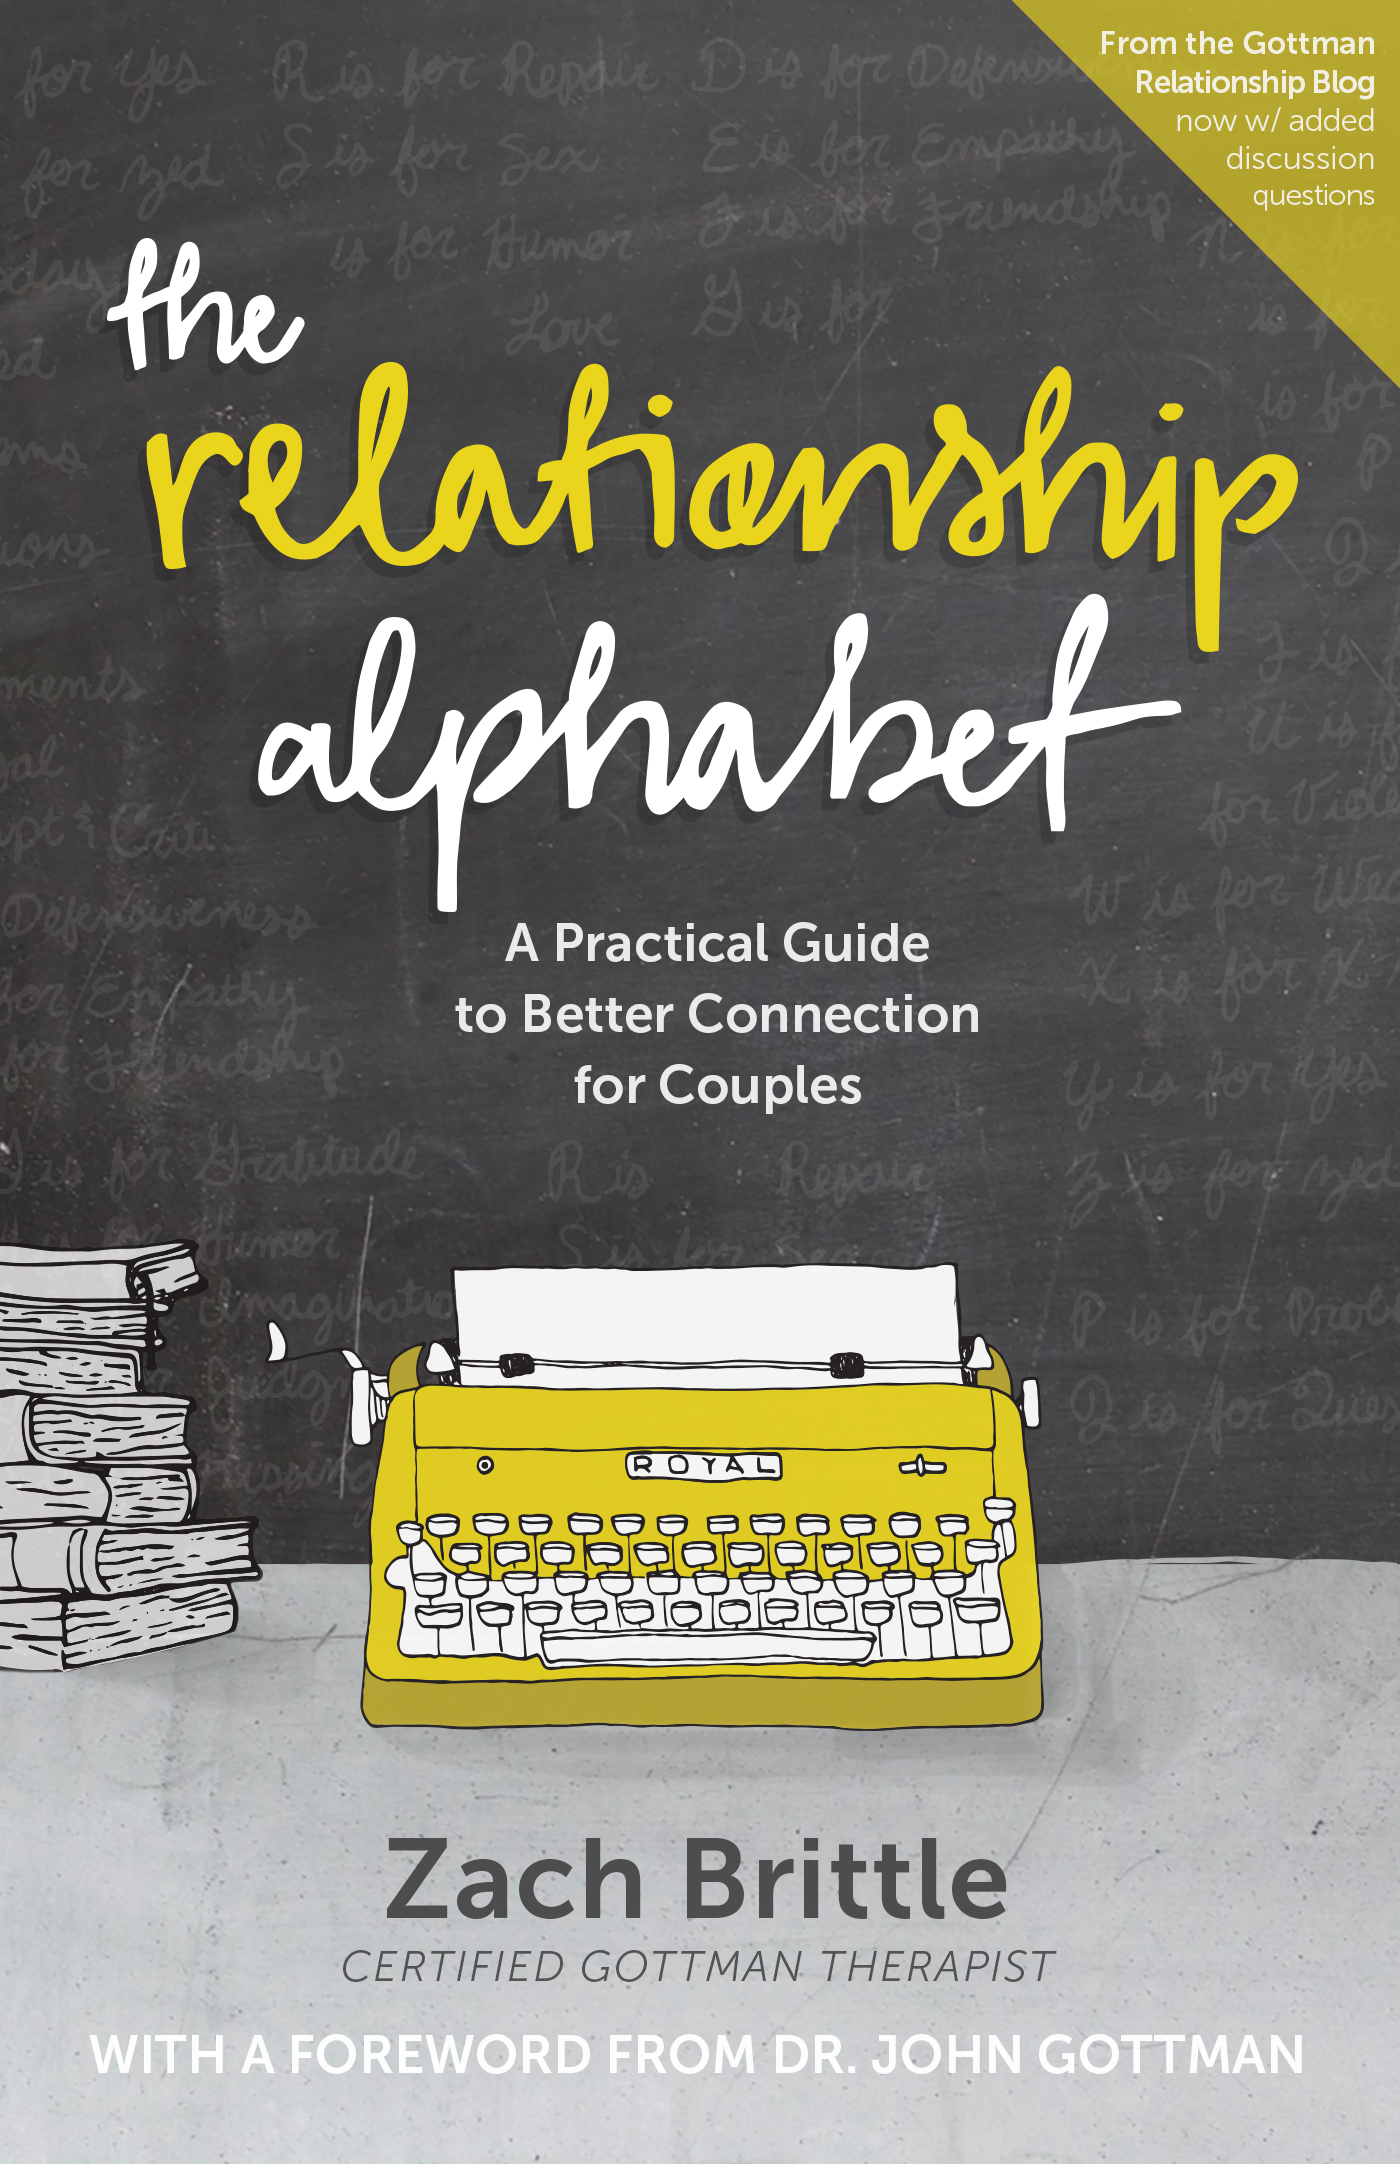 The Relationship Alphabet: A Practical Guide to Better Connection for Couples Zach Brittle